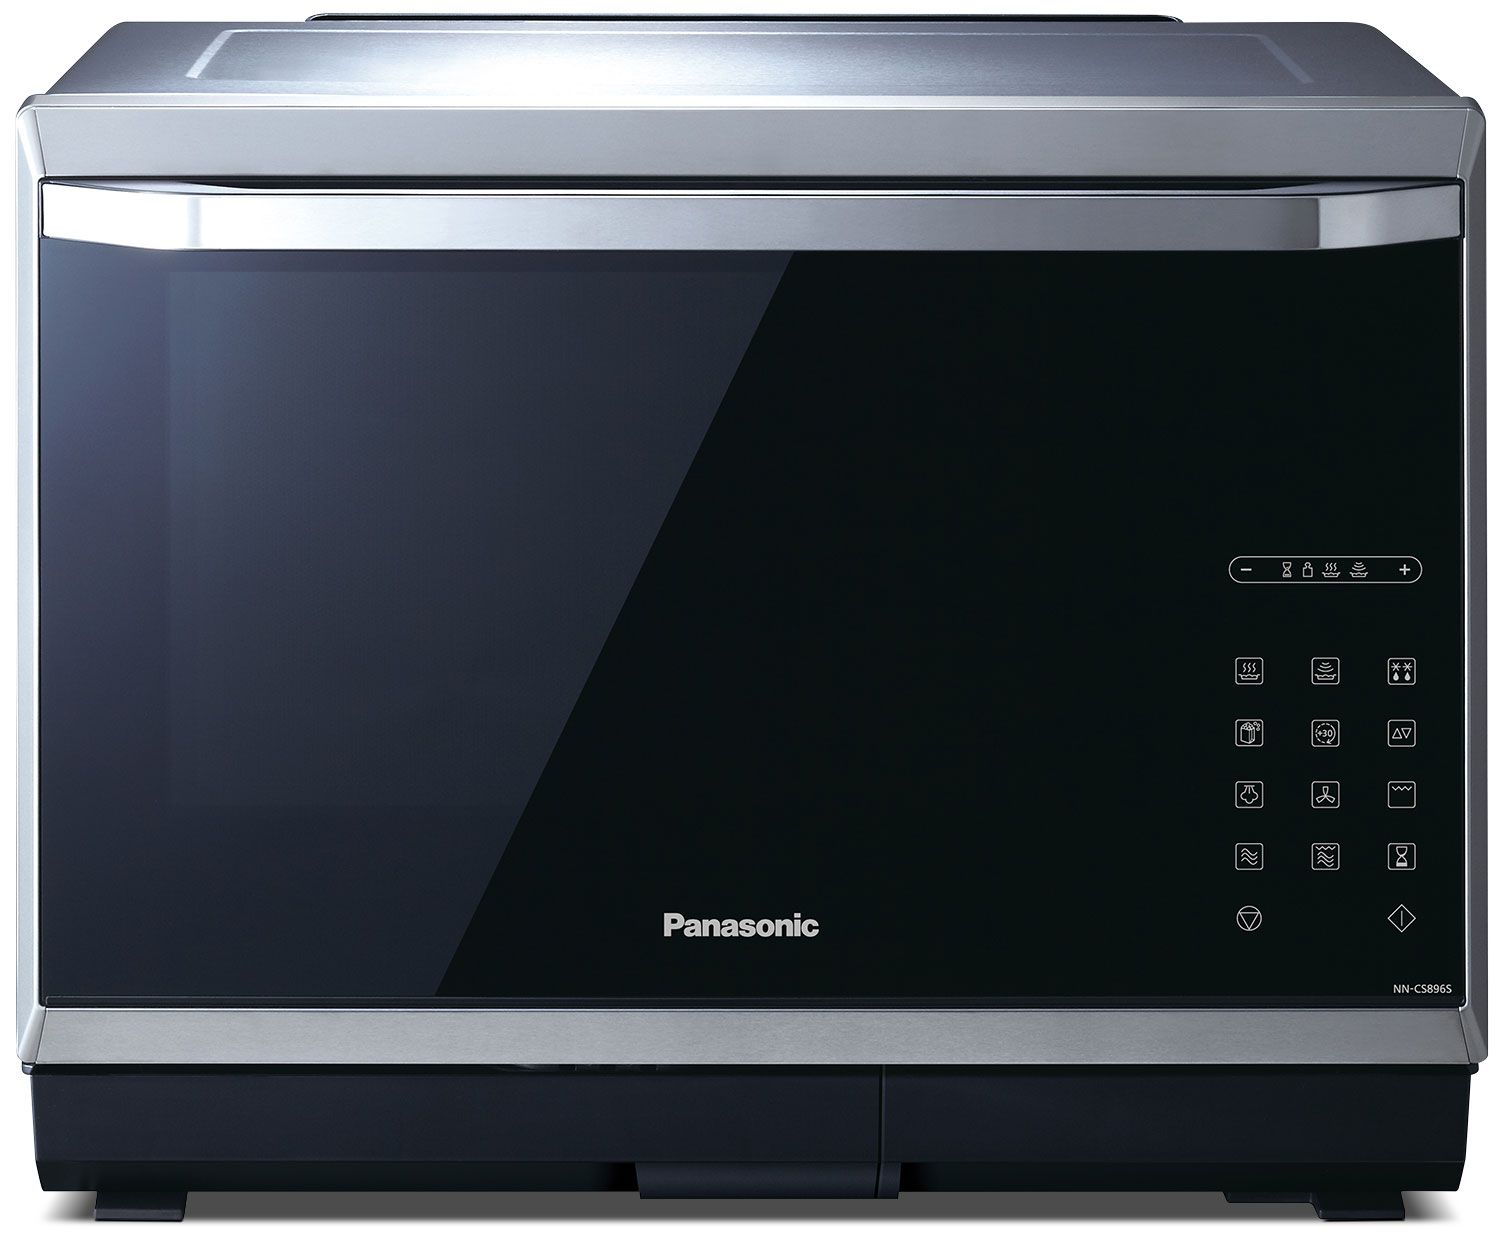 Steam Convection Microwave Oven Reviews Bestmicrowave